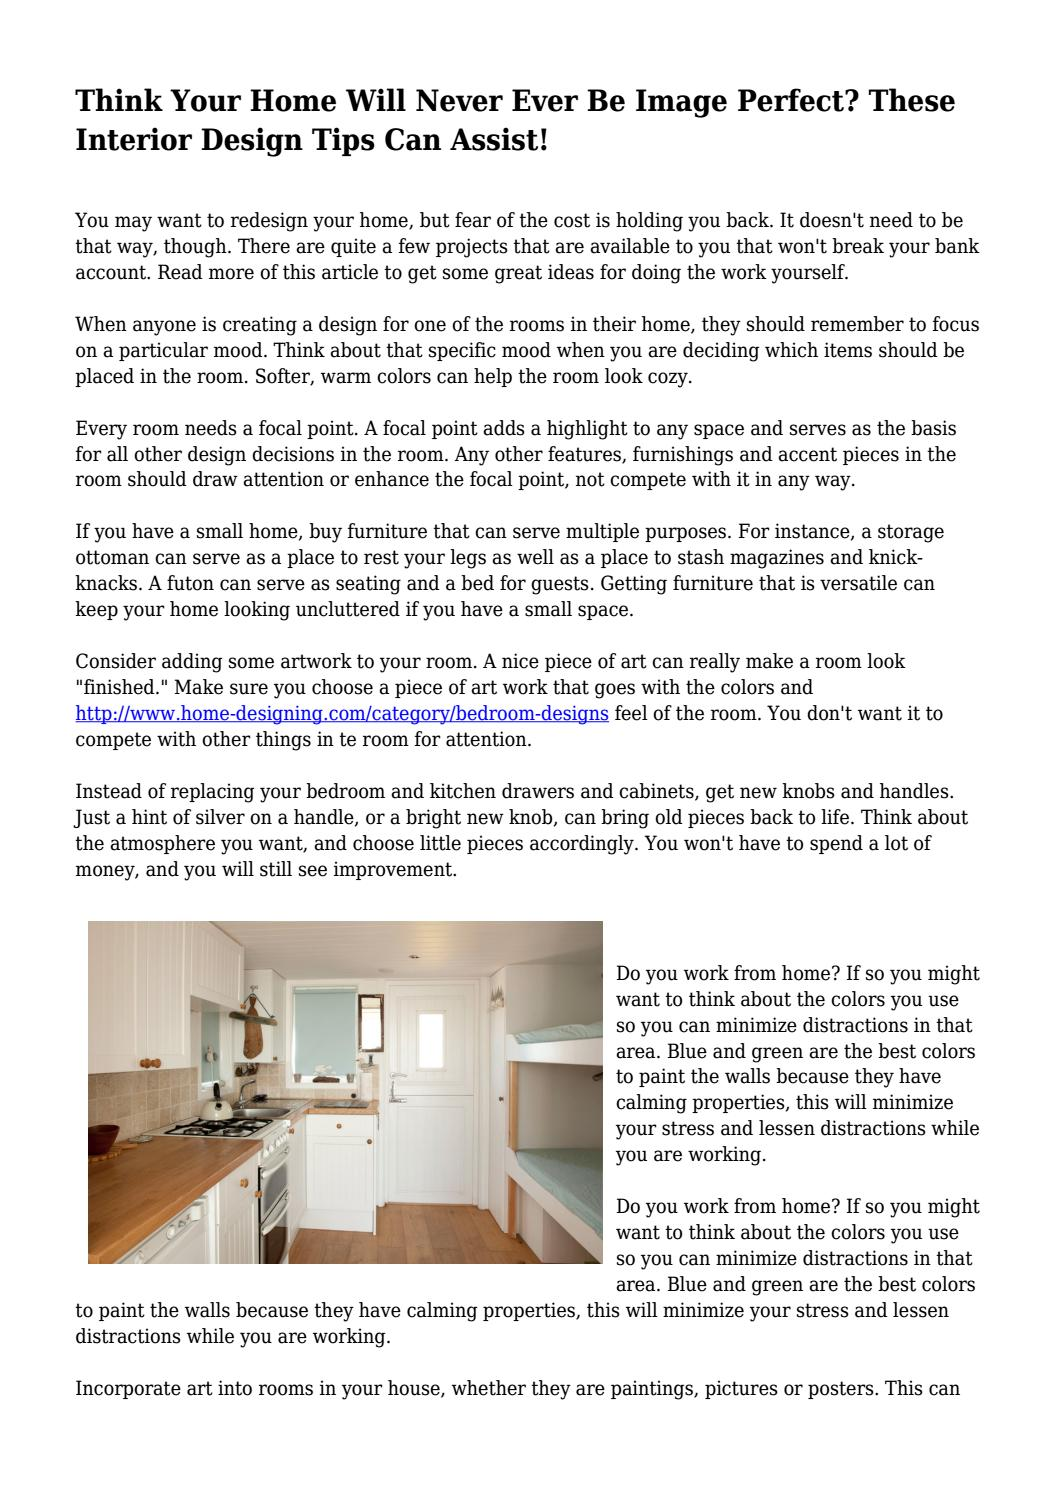 Think Your Home Will Never Ever Be Image Perfect? These Interior Design  Tips Can Assist!... By Dayrrjlvewukfadrian   Issuu